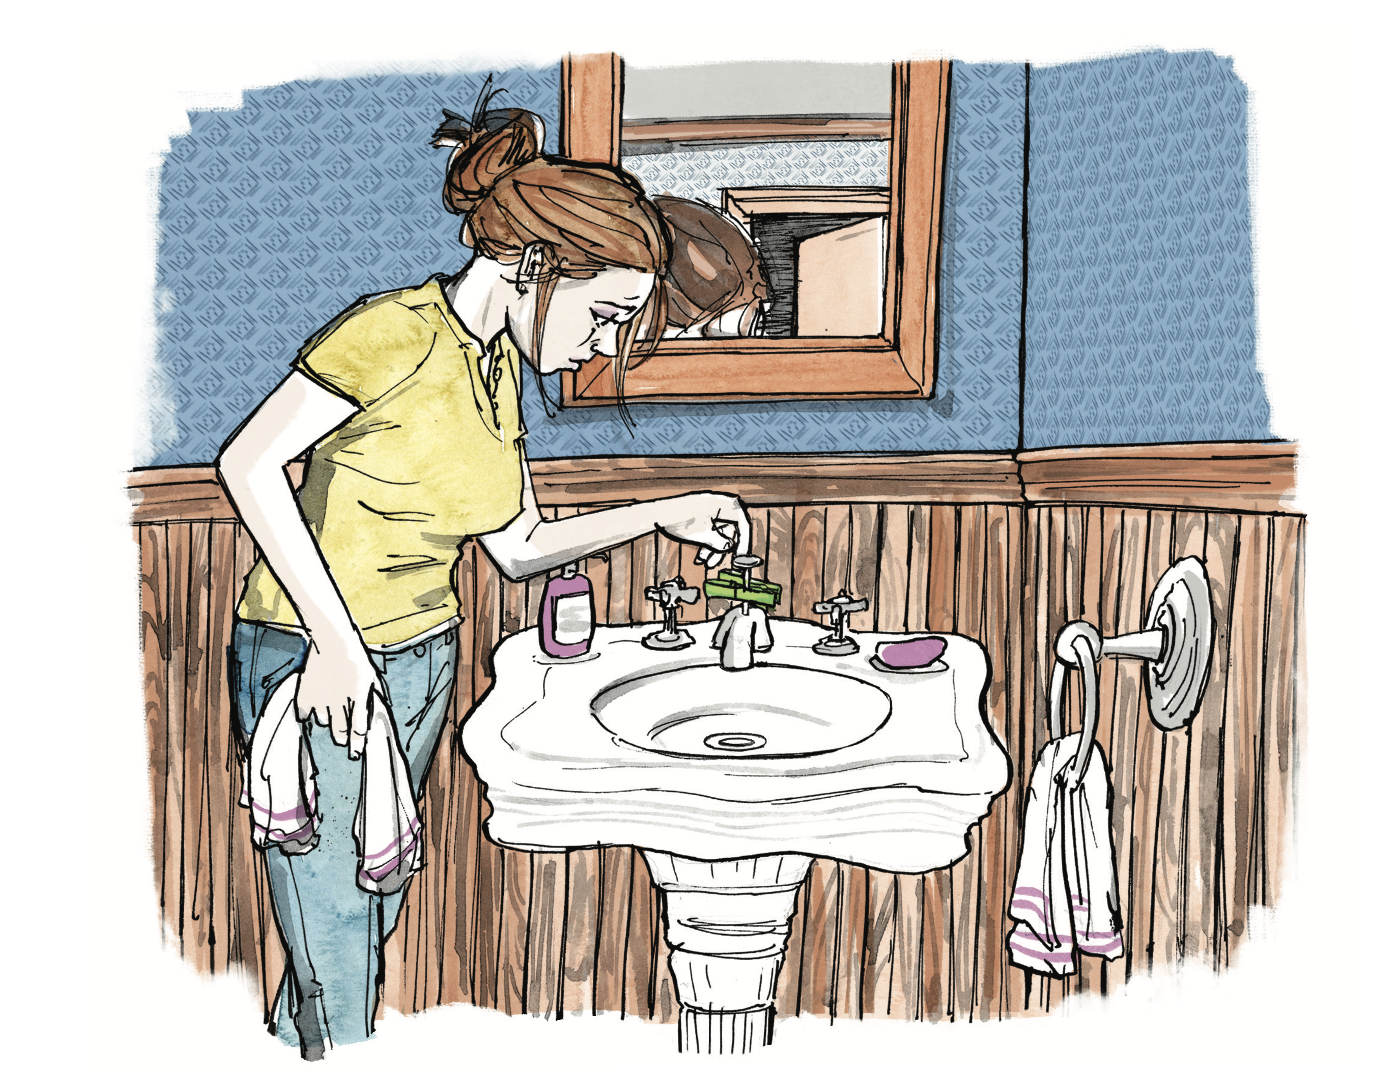 How To Fix A Leaking Sink Stopper Old House Journal Magazine